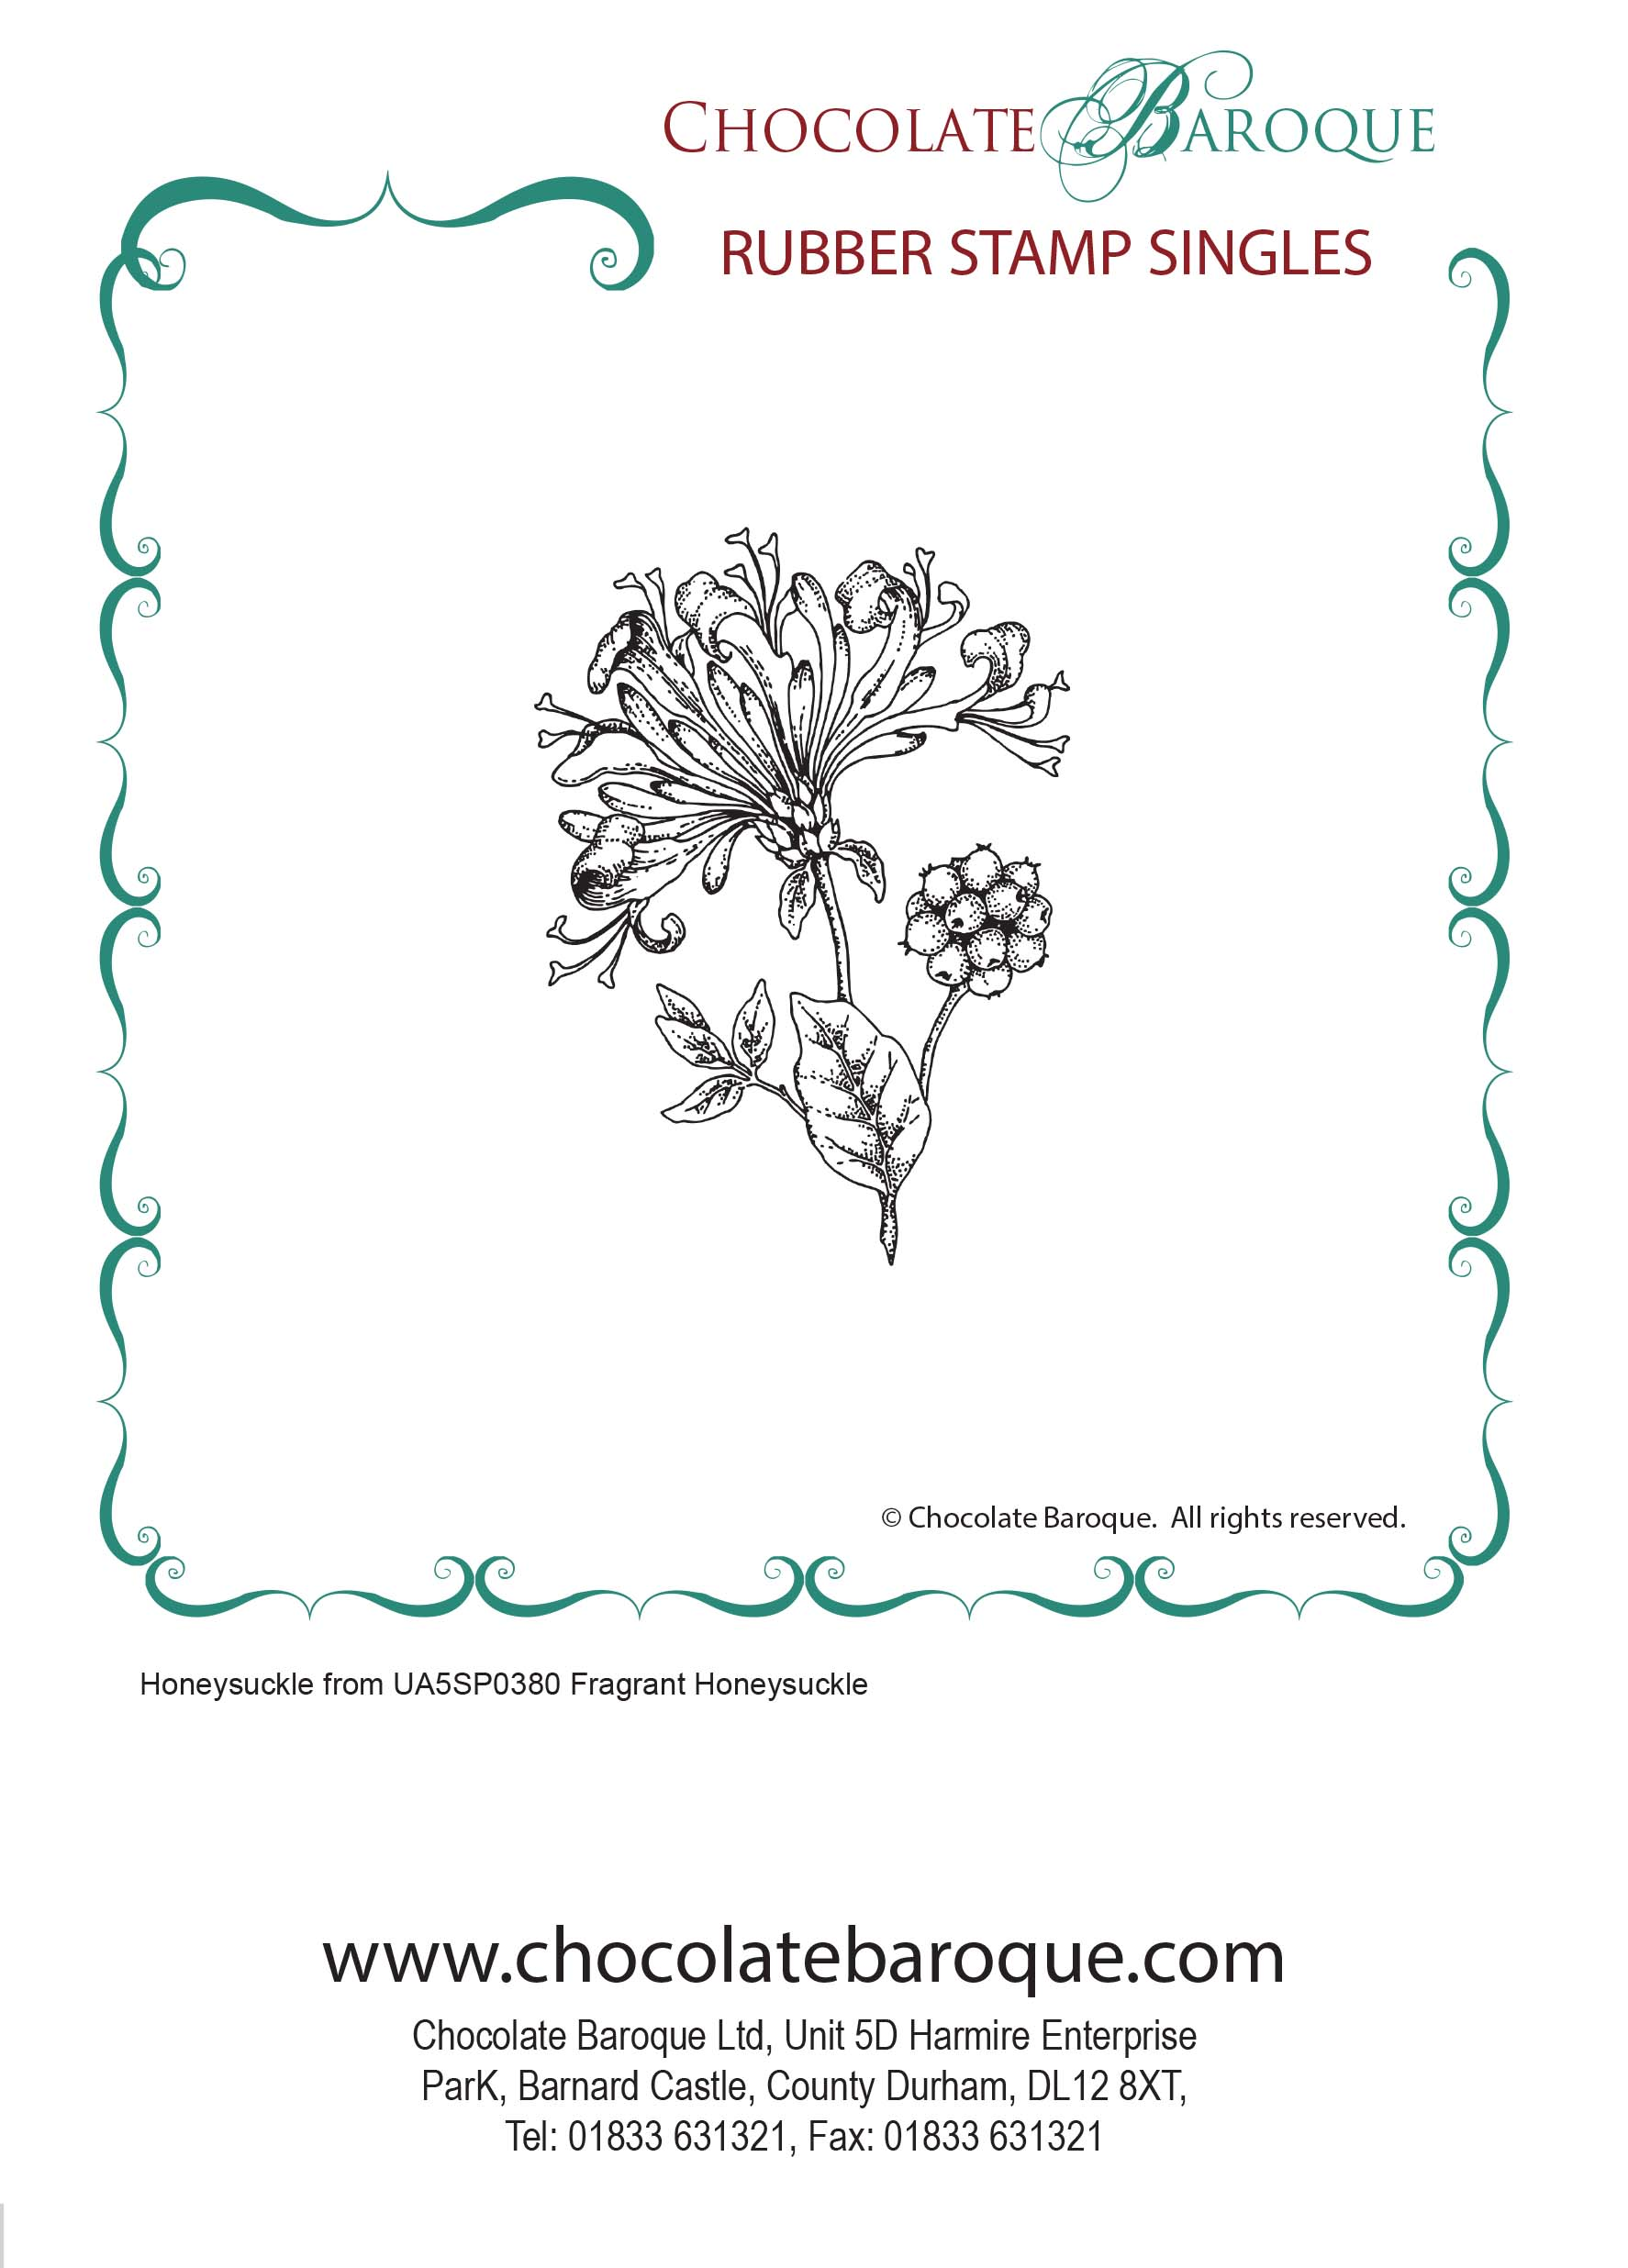 Honeysuckle single unmounted rubber stamp - Chocolate Baroque